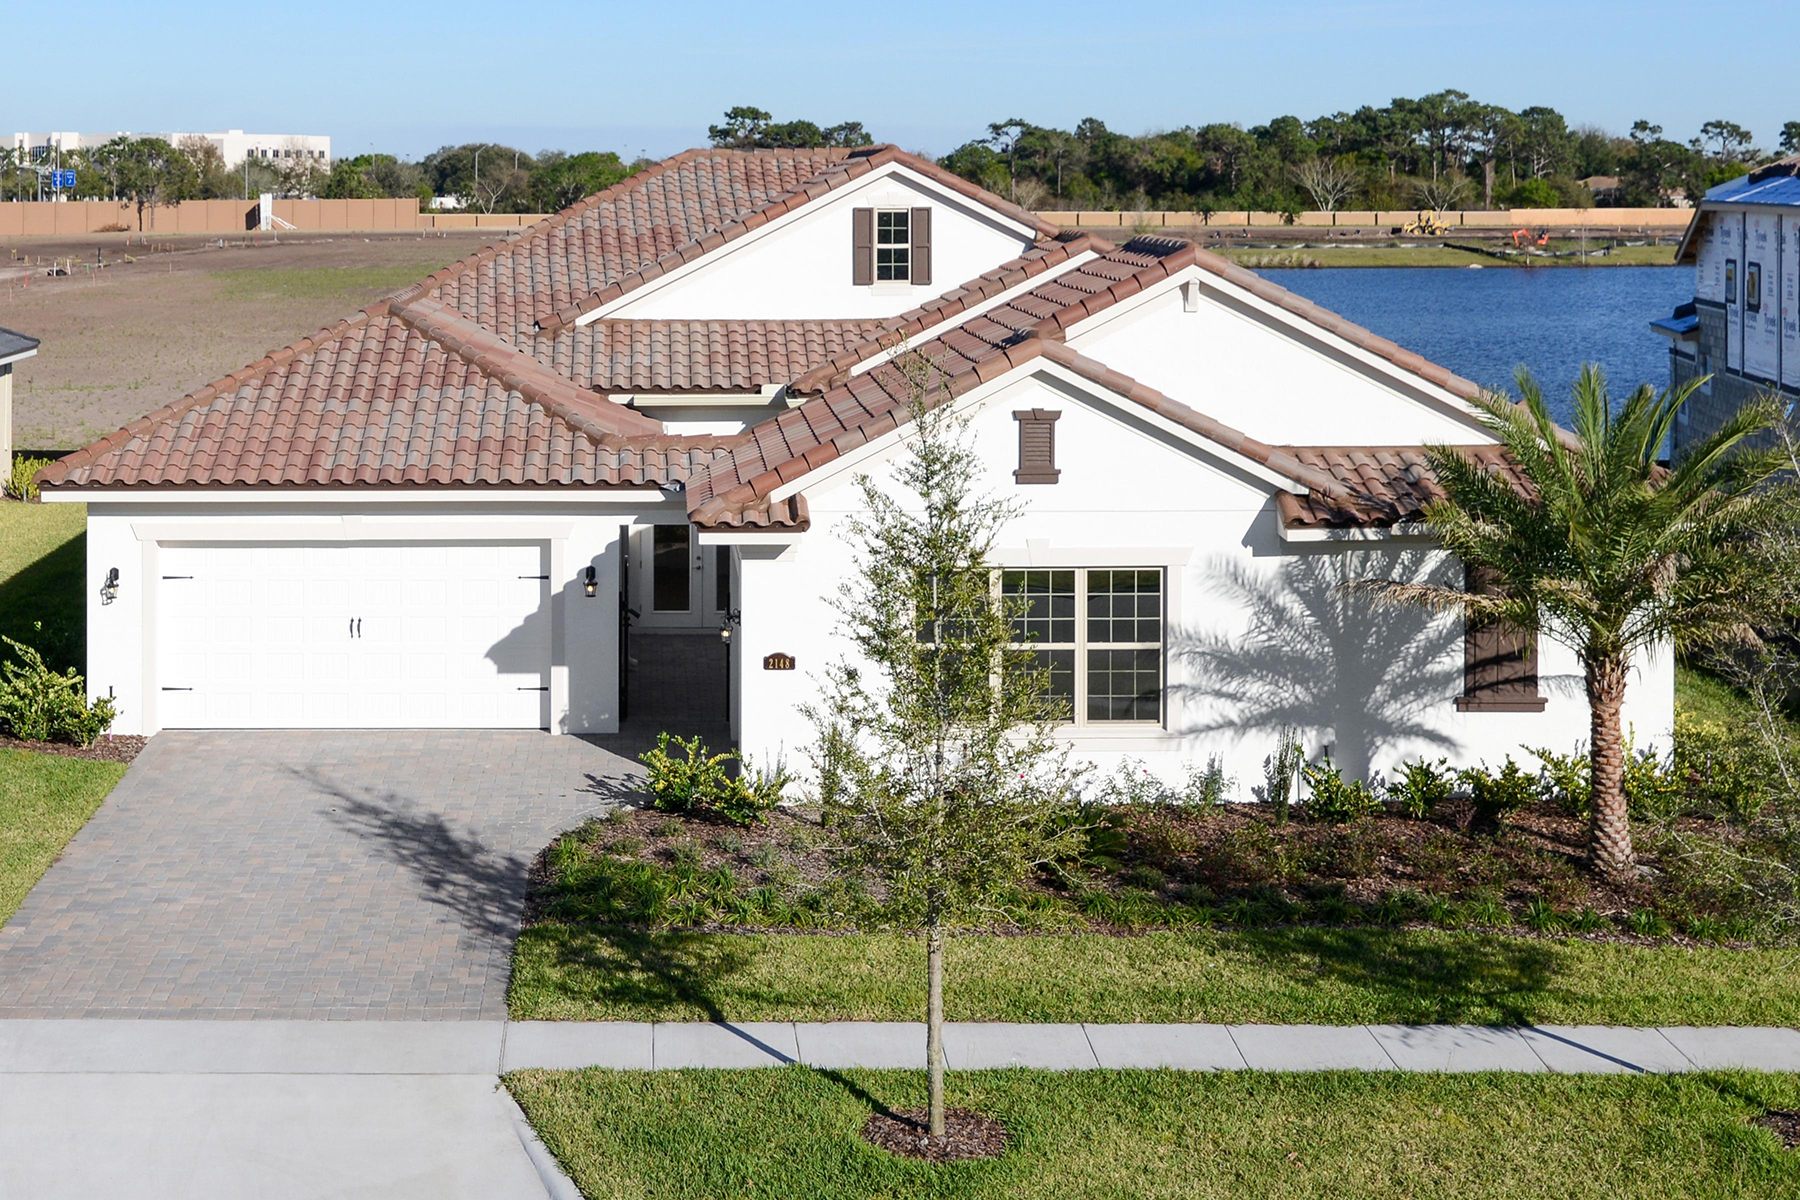 Single Family Home for Sale at ORLANDO - FLORIDA 2148 Turning Hickory Ct Orlando, Florida 32835 United States